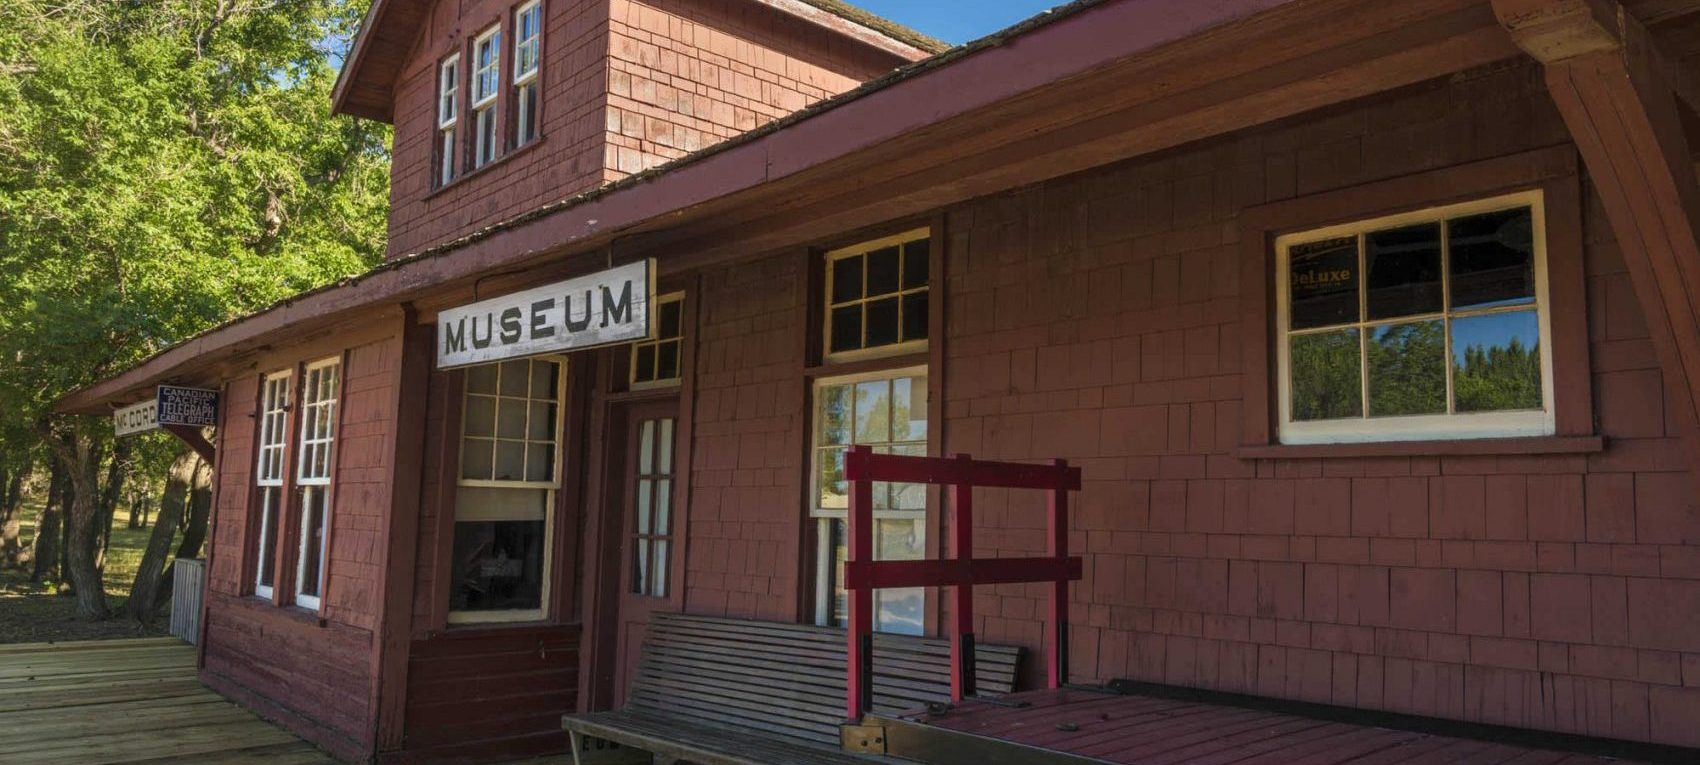 McCord Museum Saskatchewan - Photo by James R Page